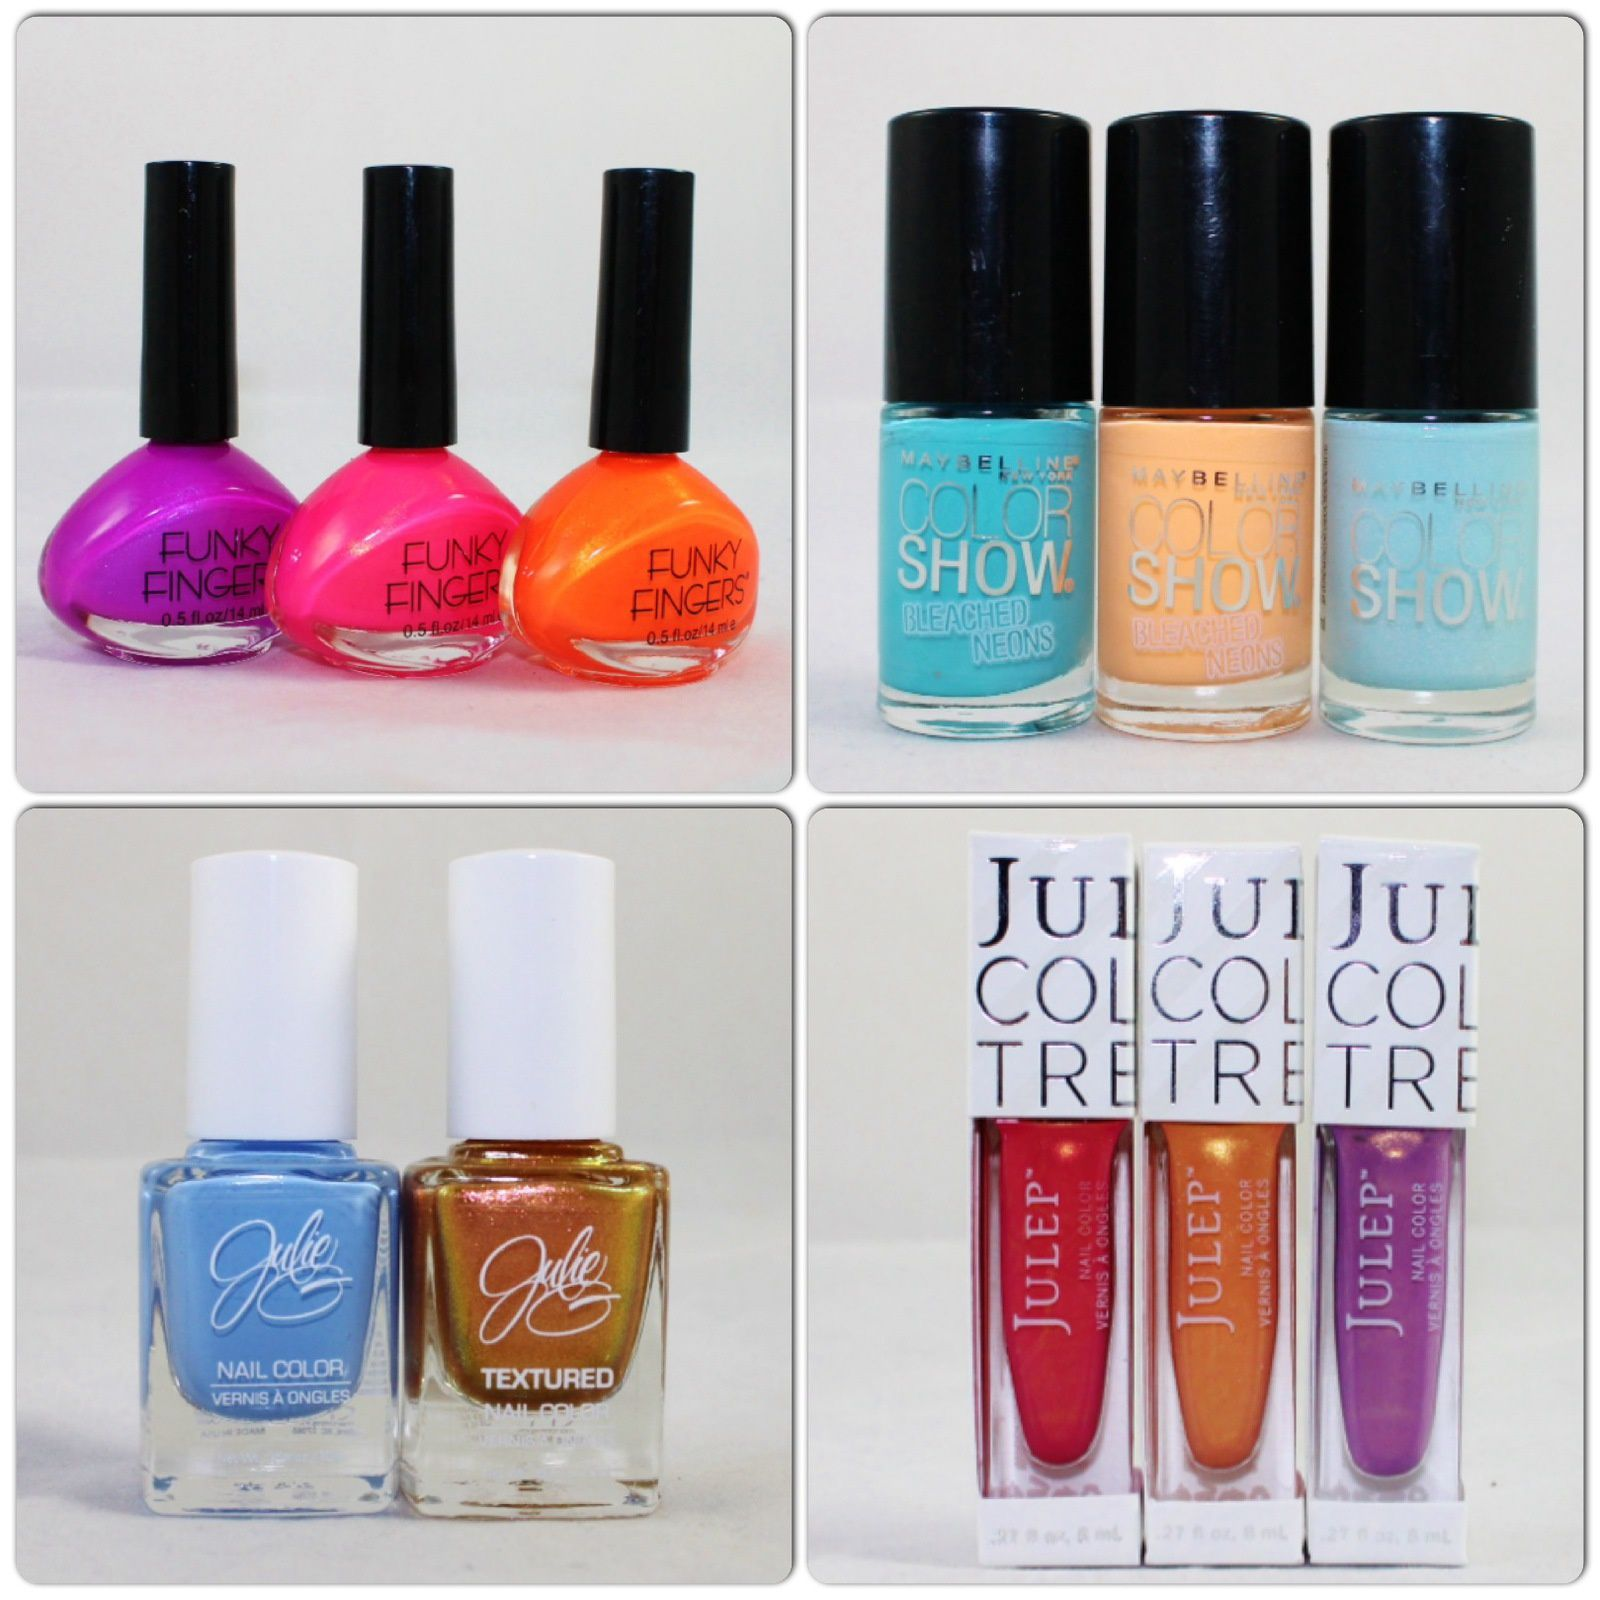 Funky Fingers BPM, All The Rave, Drop the Bass. Maybelline Bleached in Peach, Day Glow Teal, Frozen Over. Julie G Santorini, Golden Sunset. Julep Laree, Saaya, Paulette.